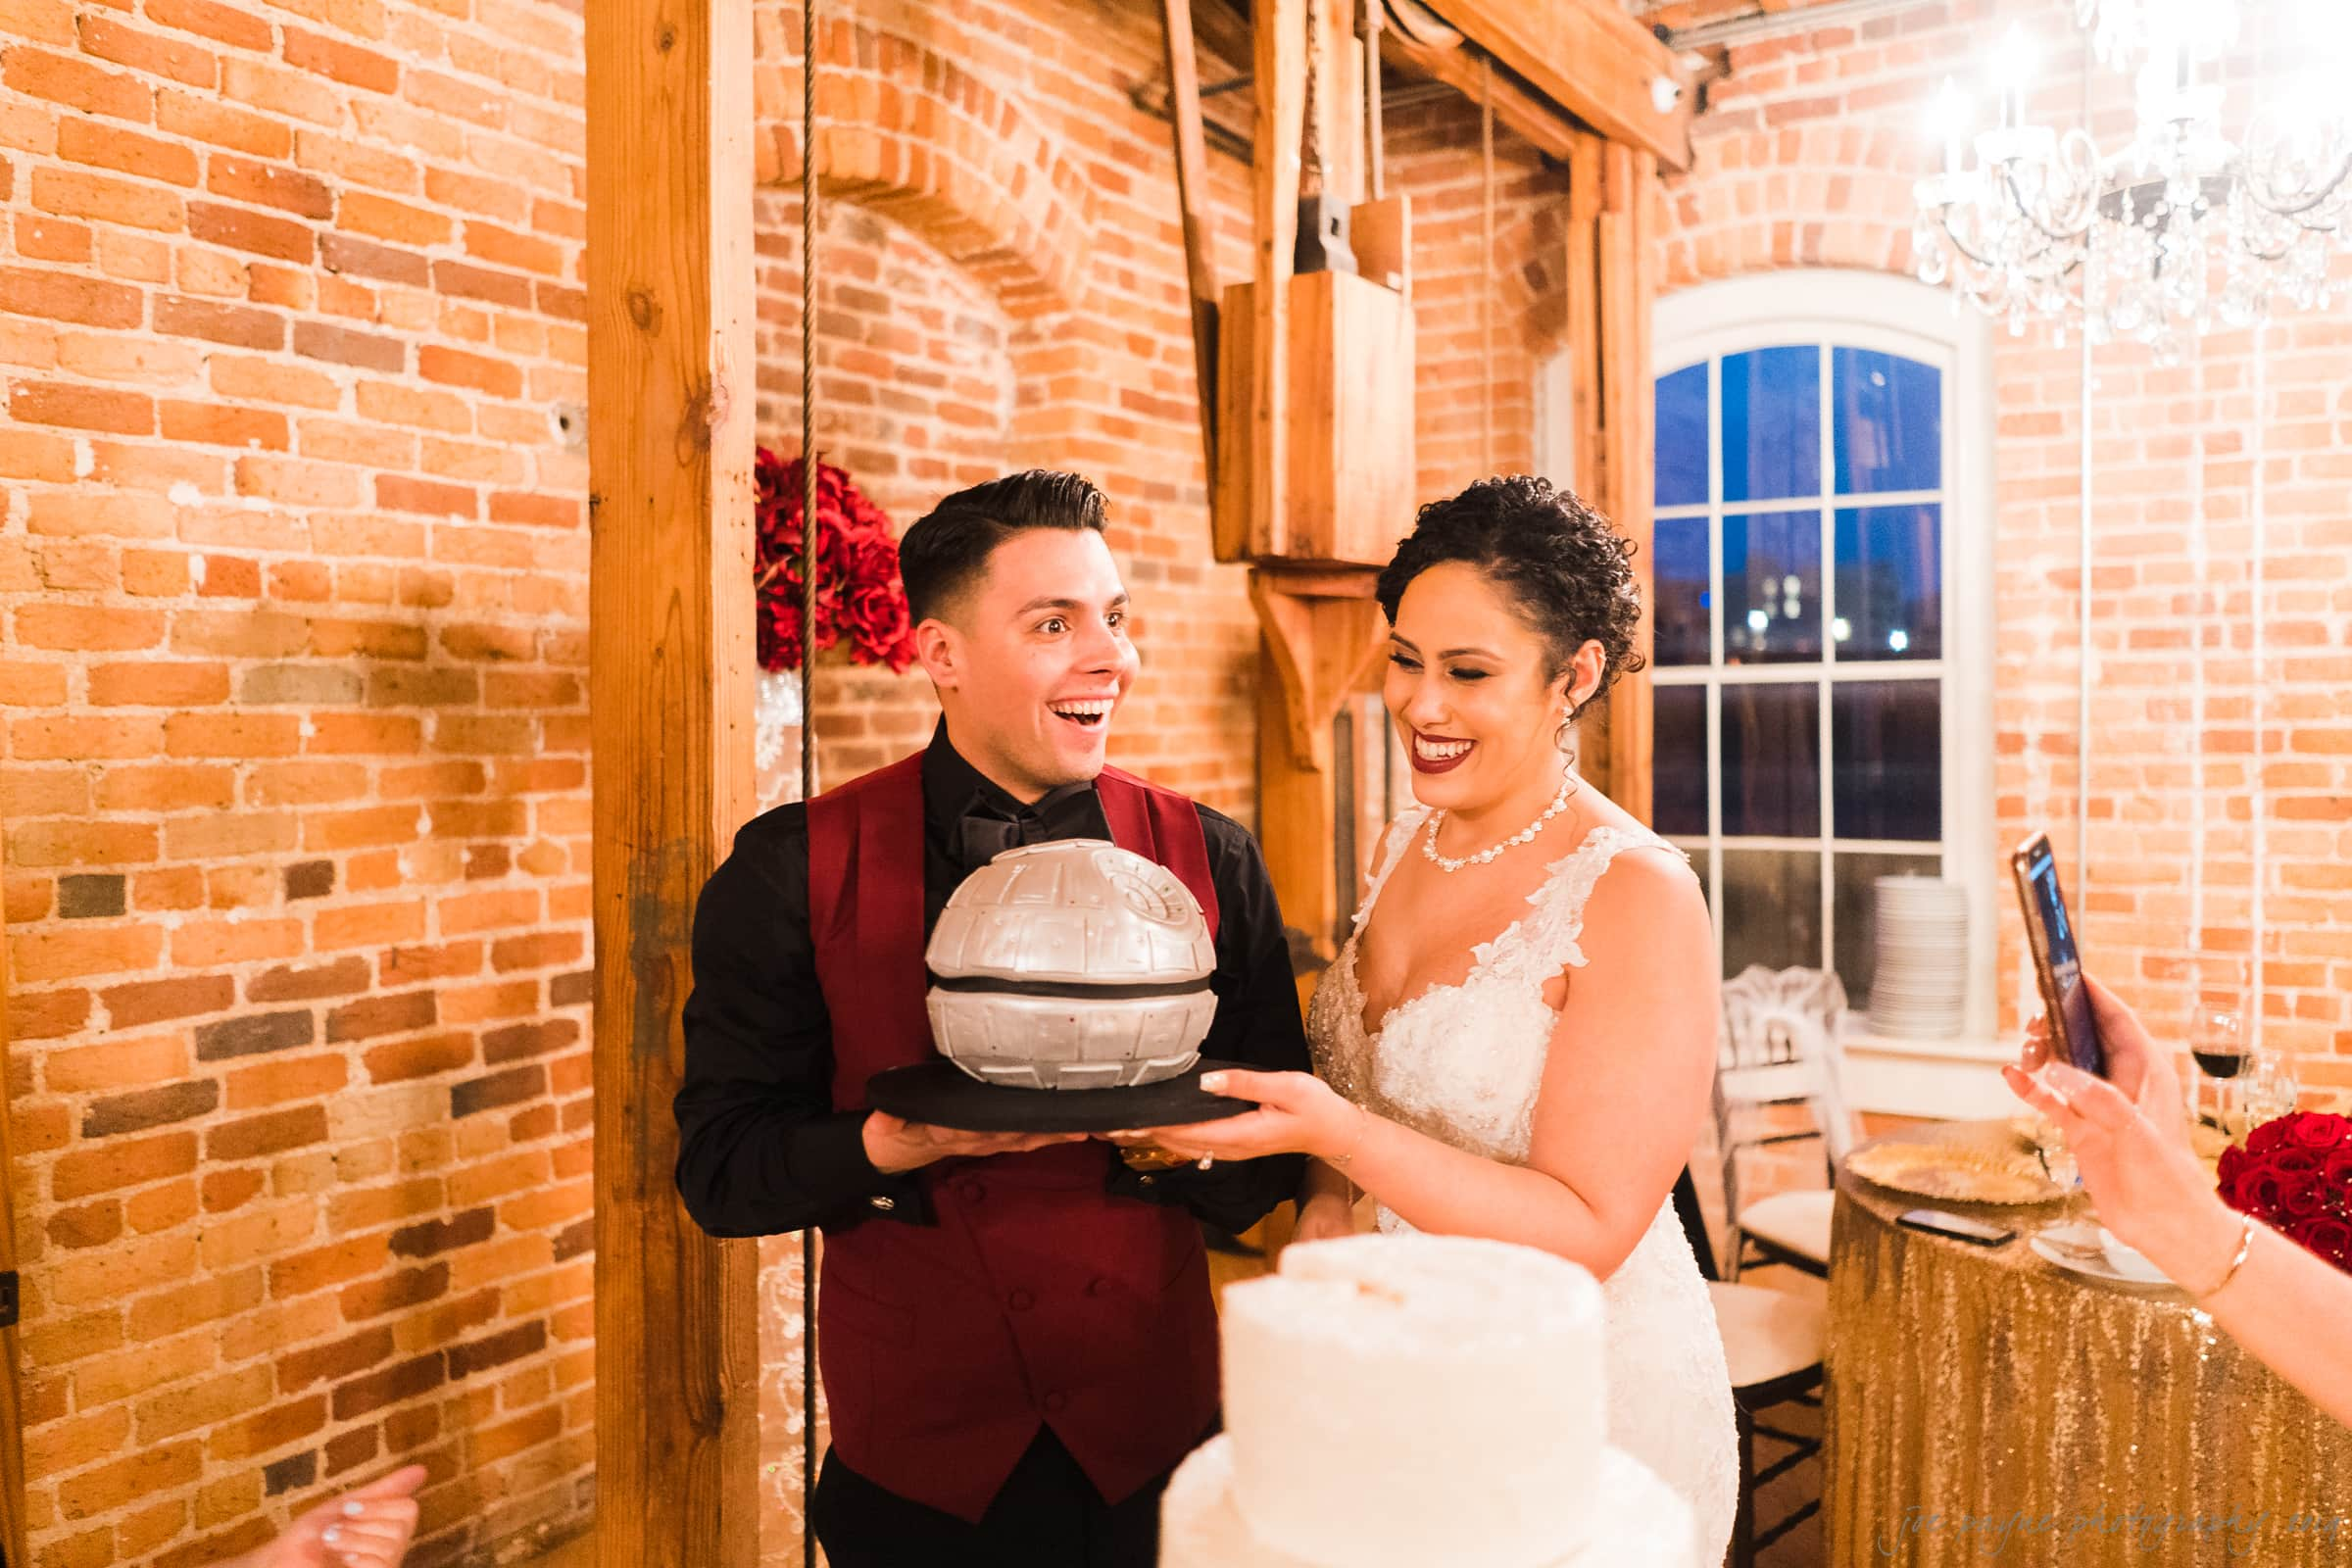 melrose knitting mill raleigh wedding photographer melanie anthony 55